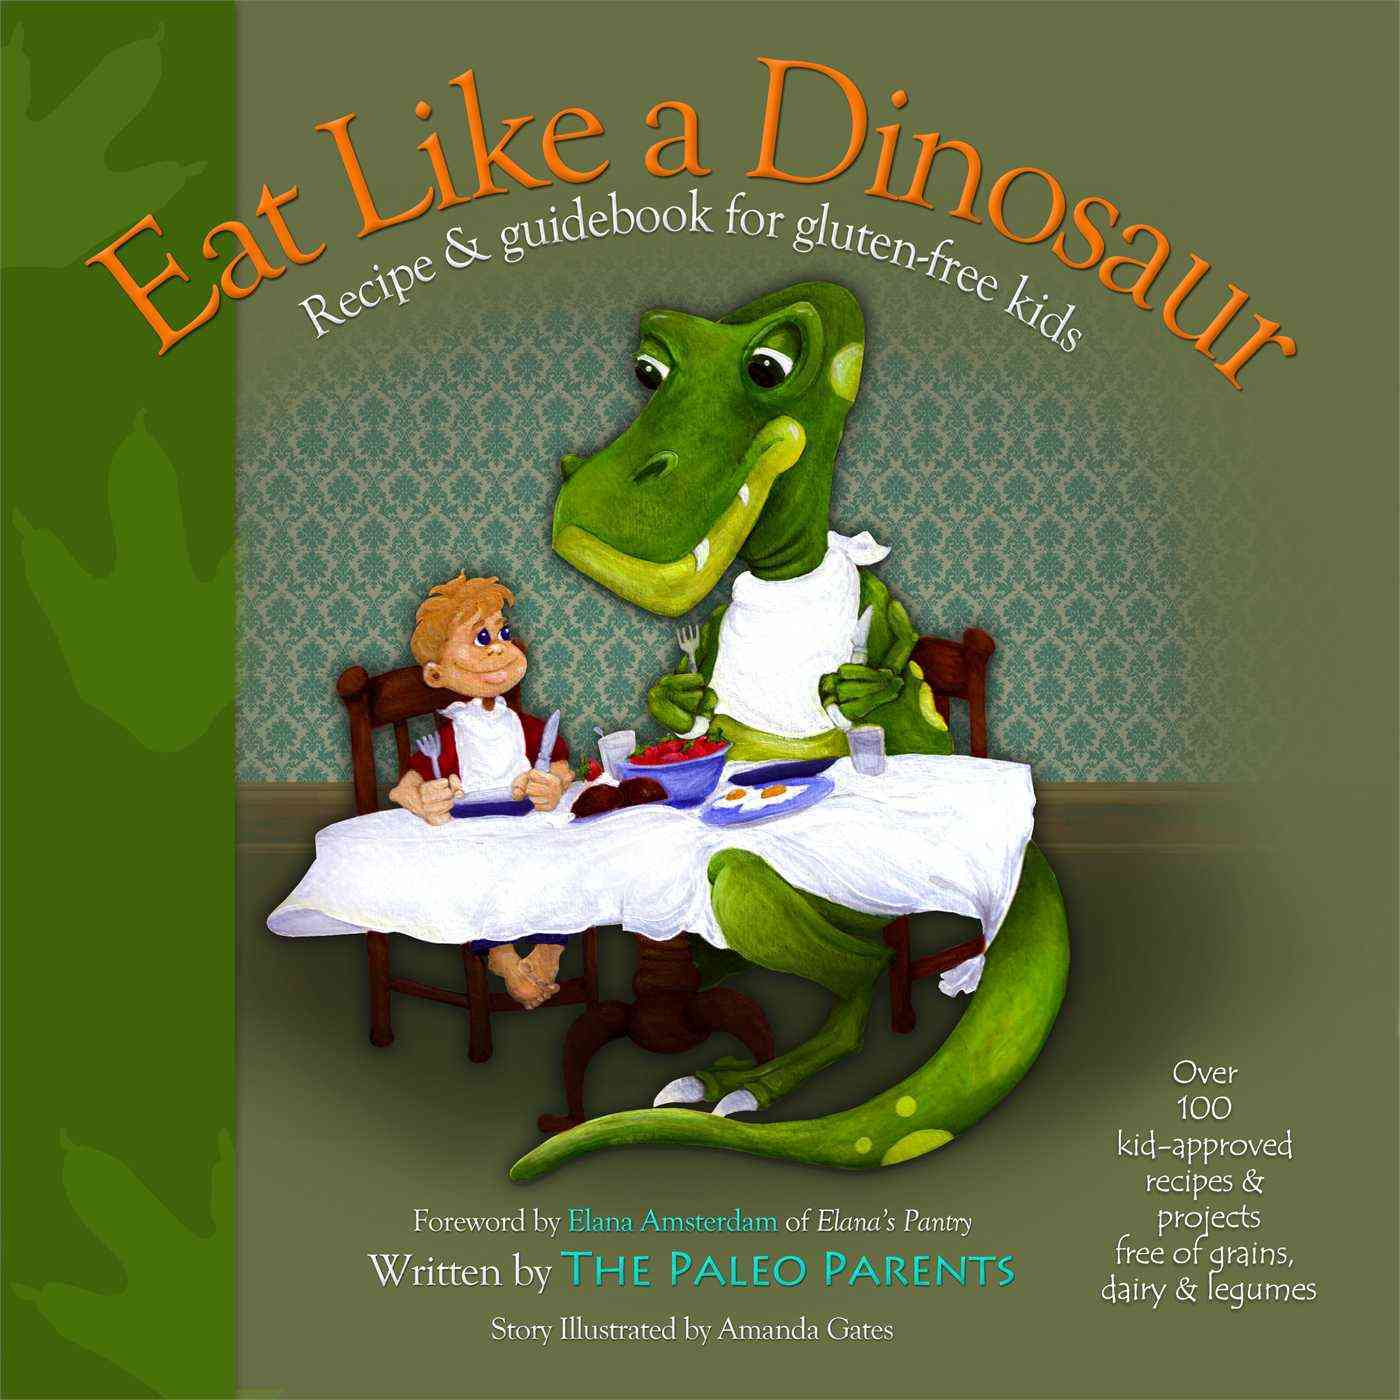 Eat Like a Dinosaur: Recipe & Guidebook for Gluten-Free Kids (Paperback)